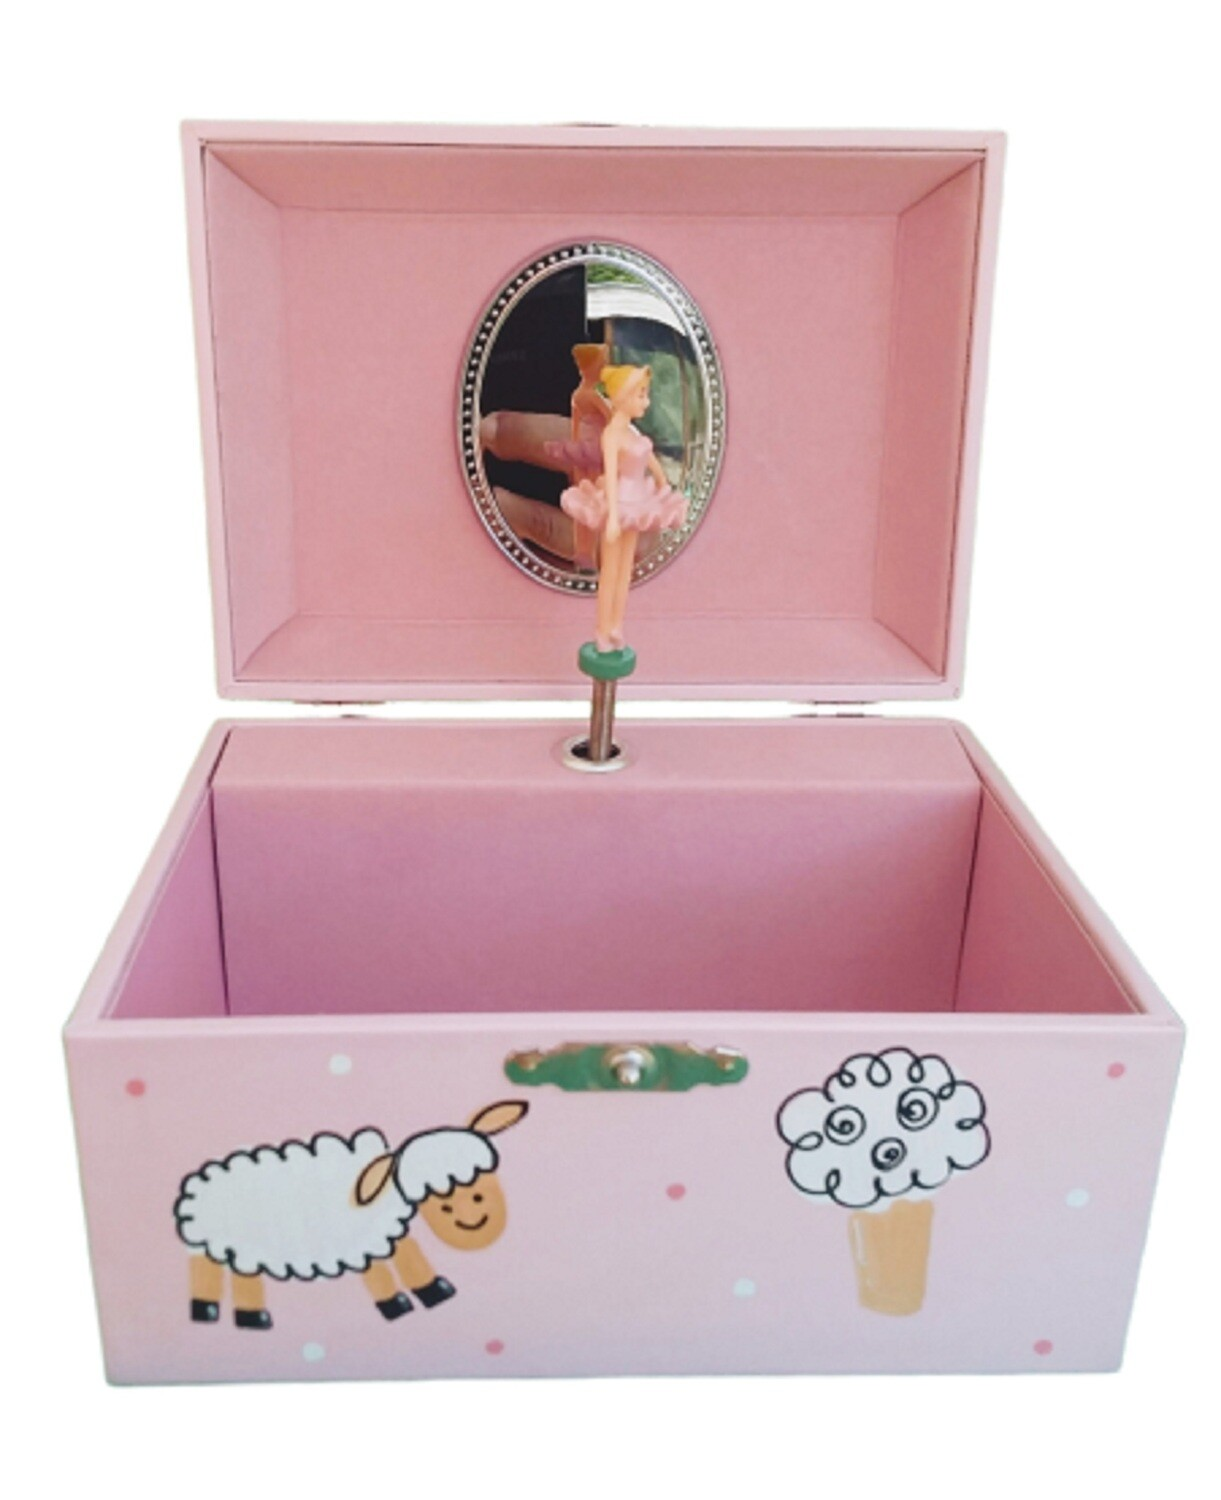 Personalized Children's Ballerina Musical Jewelry Box in Pink